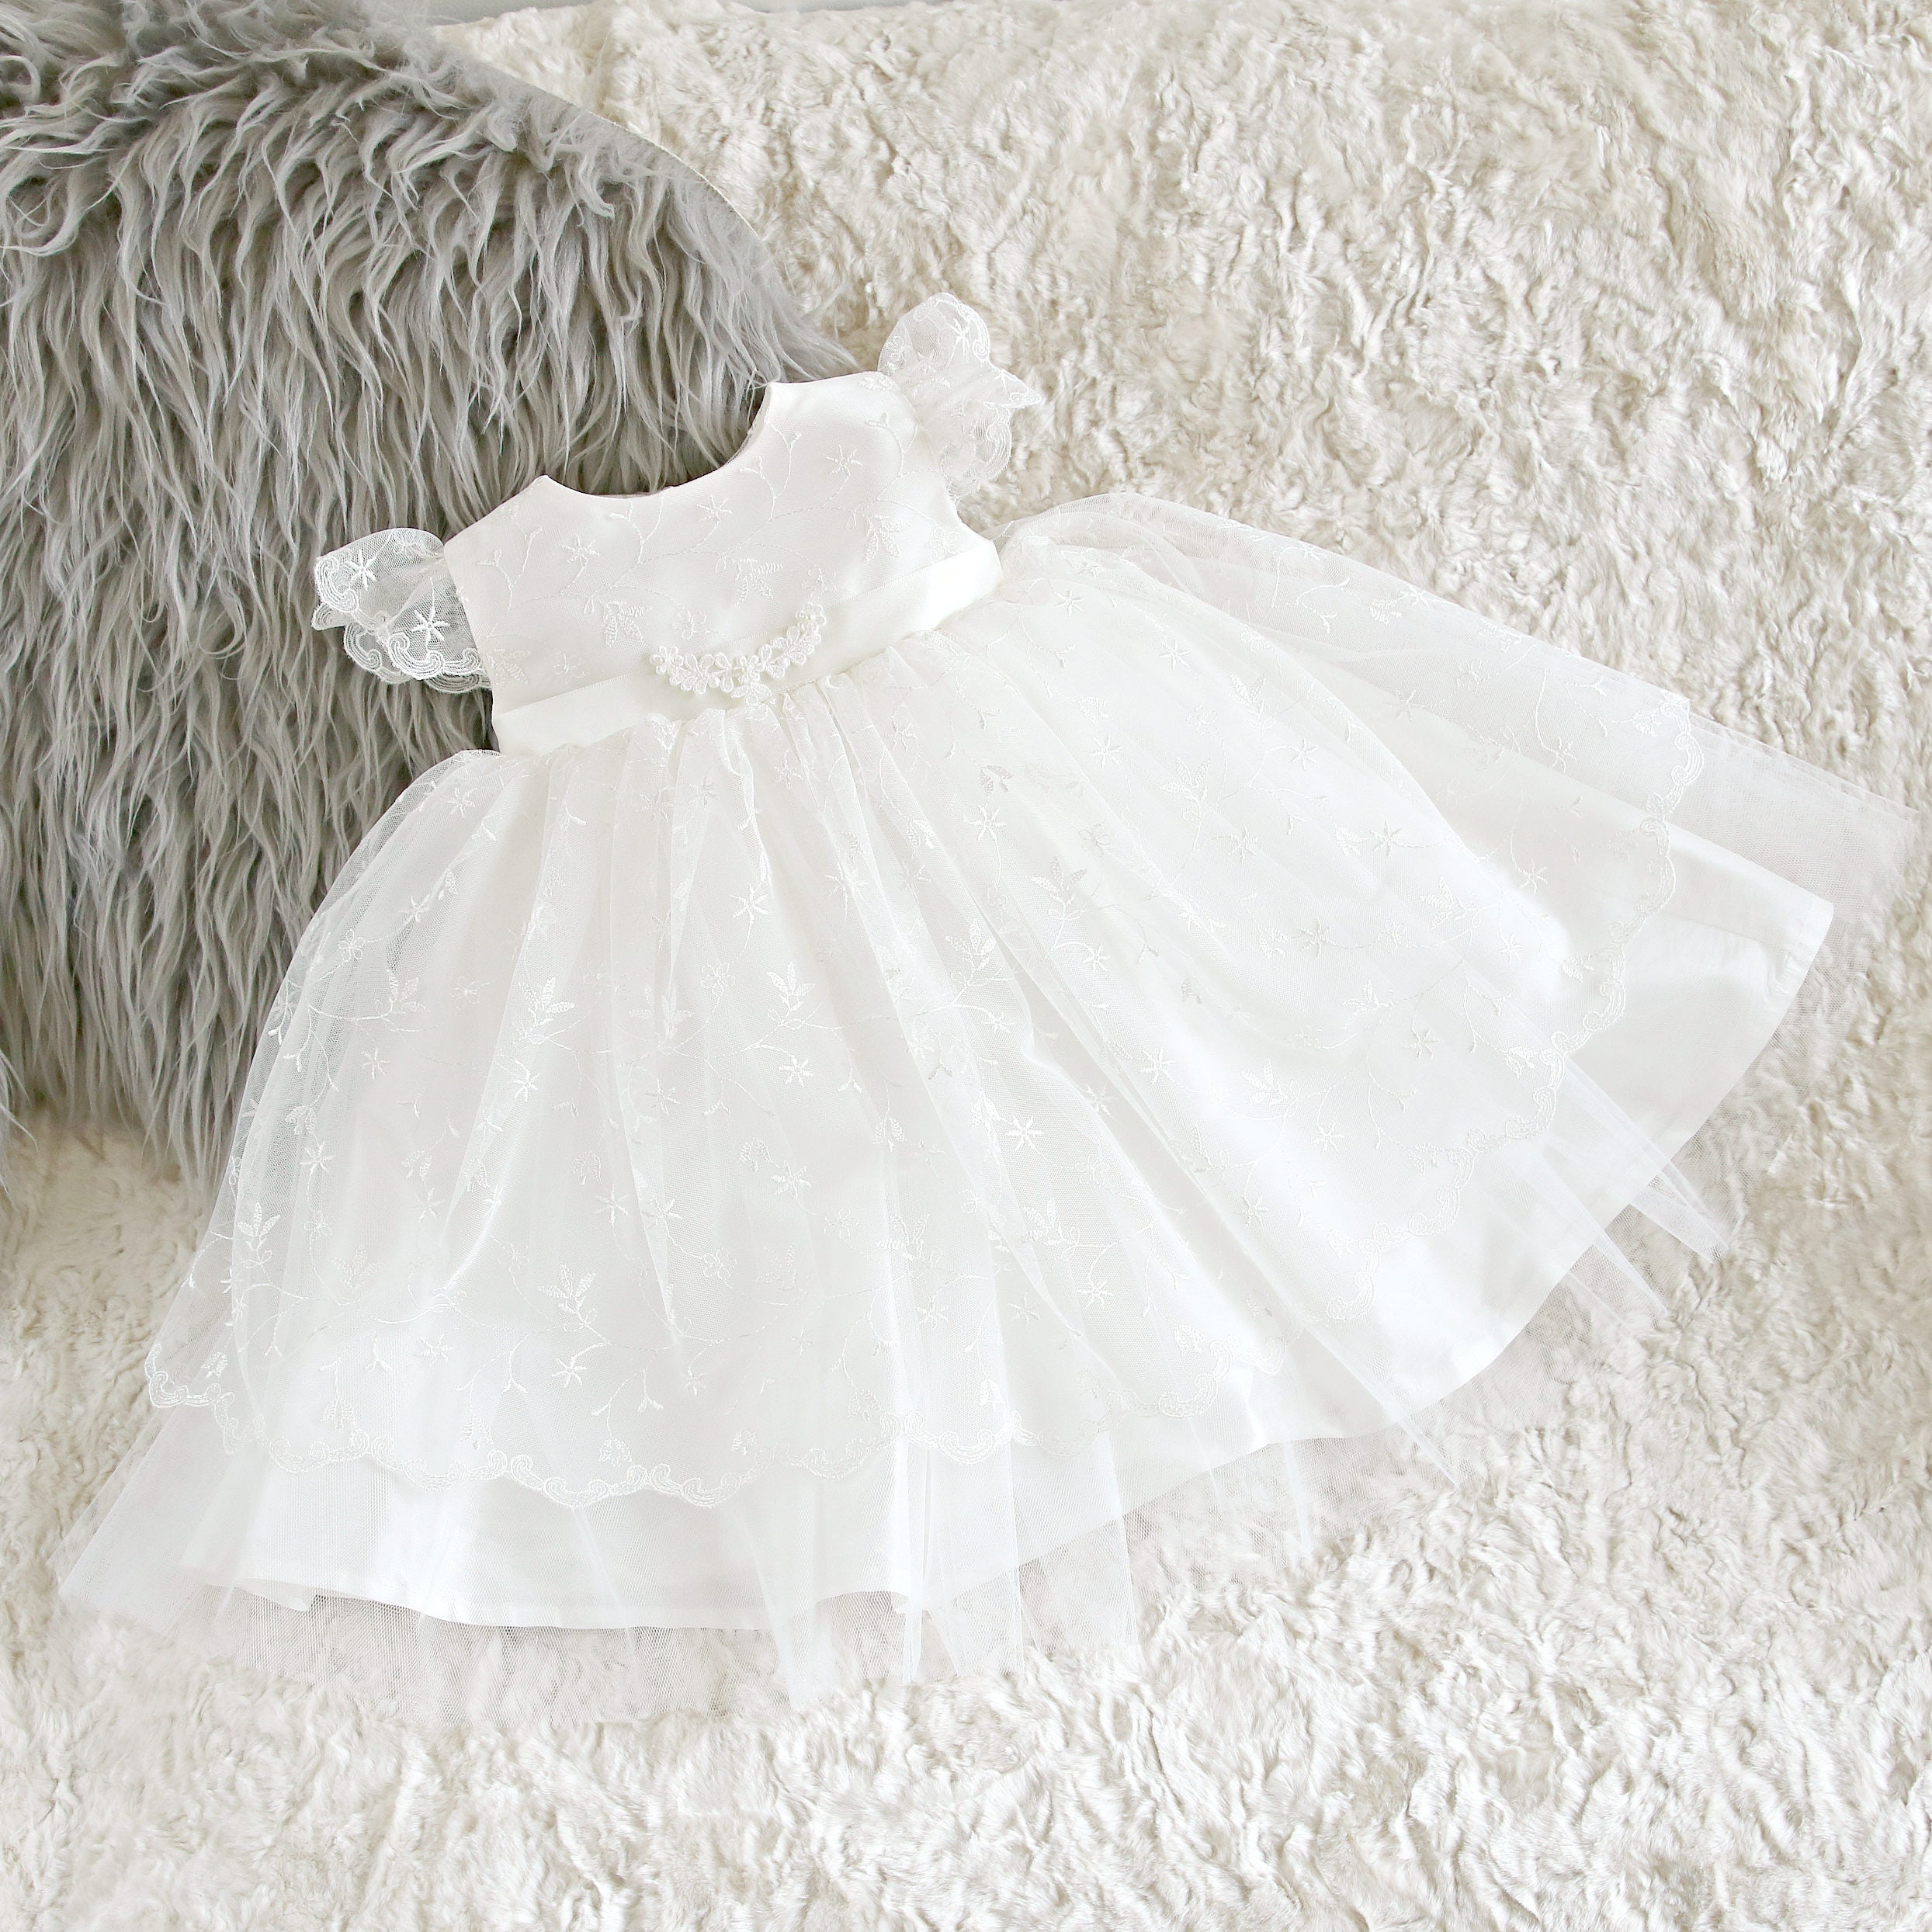 Christening Dress Ava  Adore Baby  Baptism Dress  Baby Girl Baptism Dress  Baby Blessing Dress  Christening Gown  Baptism Gown